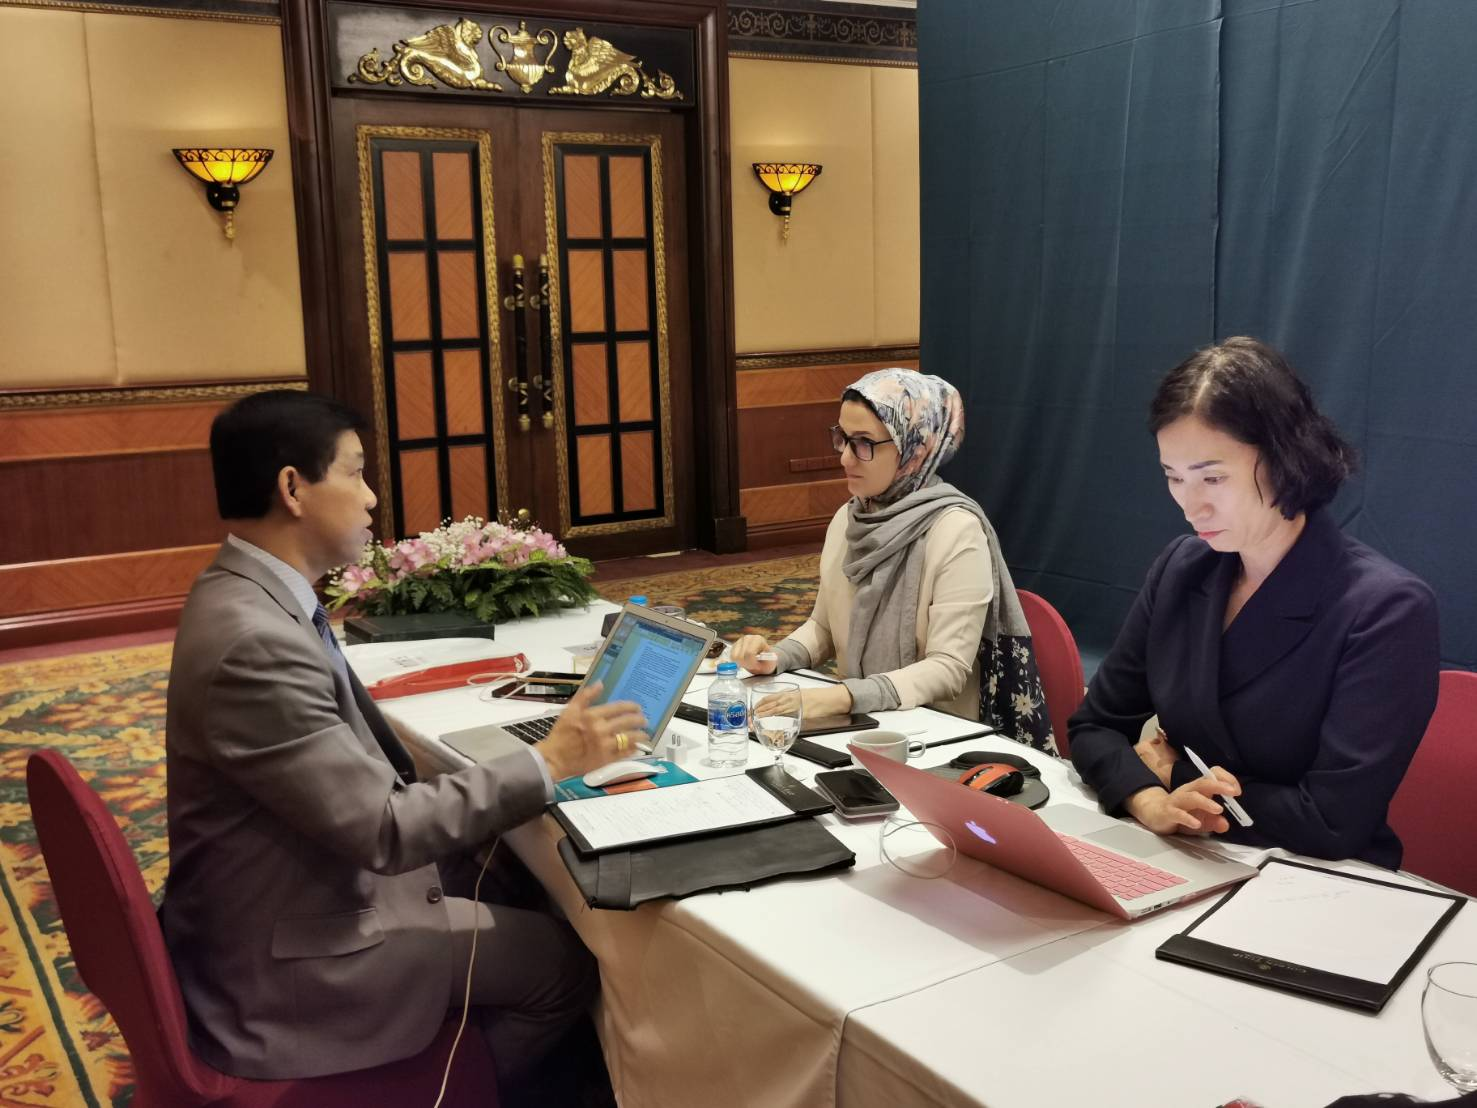 GROWING SOCIAL MEDIA AUDIENCE AMONG KEY TOPICS DISCUSSED AT AVC COMMUNICATION COMMITTEE MEETING